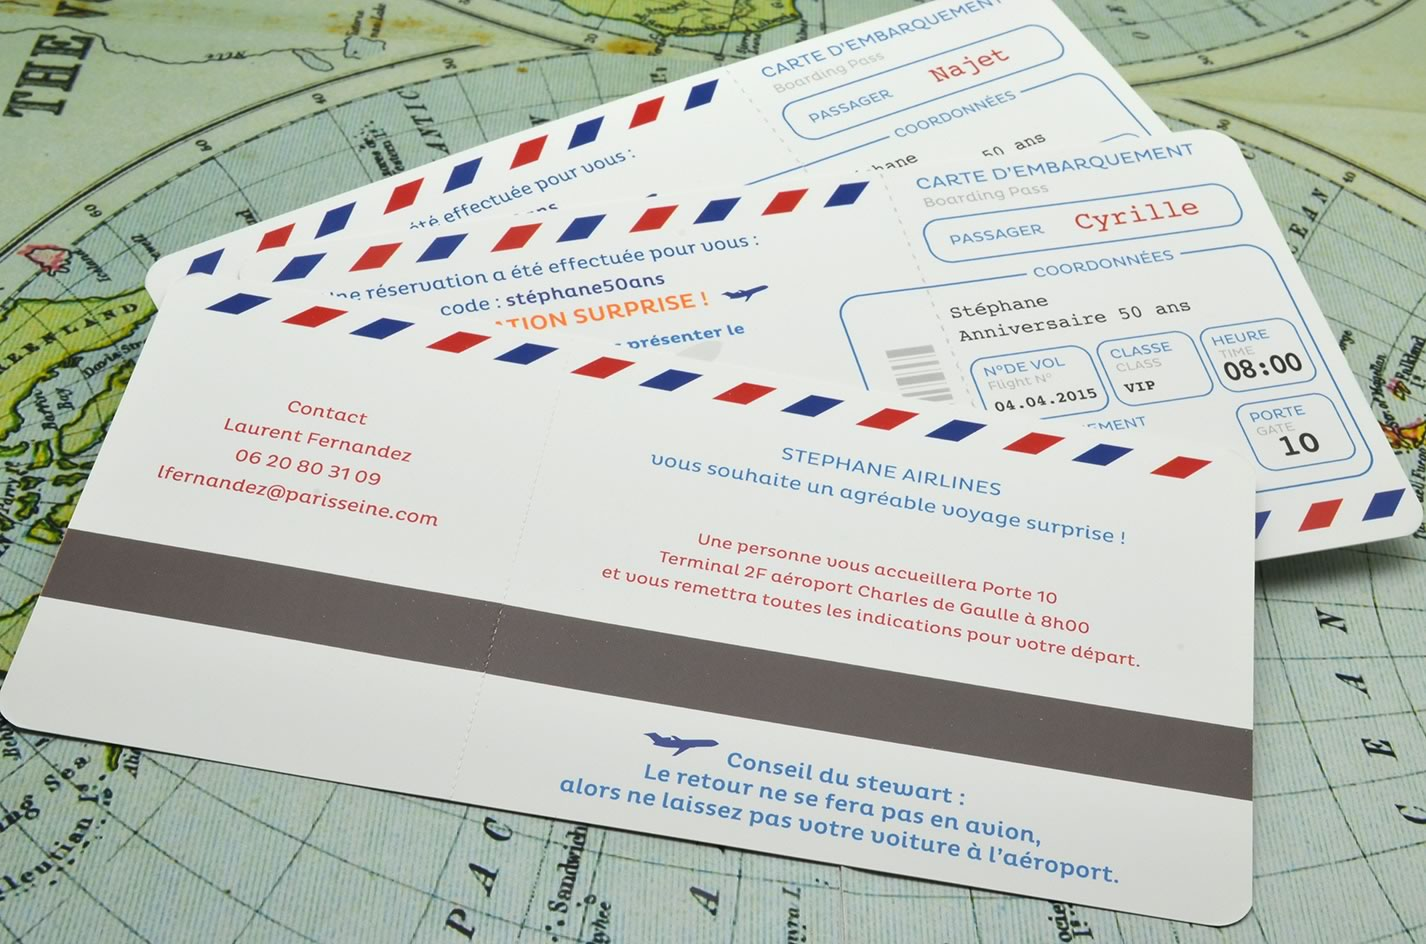 Carte anniversaire 50 ans billet d avion latelier delsa faire part invitation anniversaire surprise billet avion air lines voyage sur mesure 50 ans voyage latelierdelsa stopboris Image collections